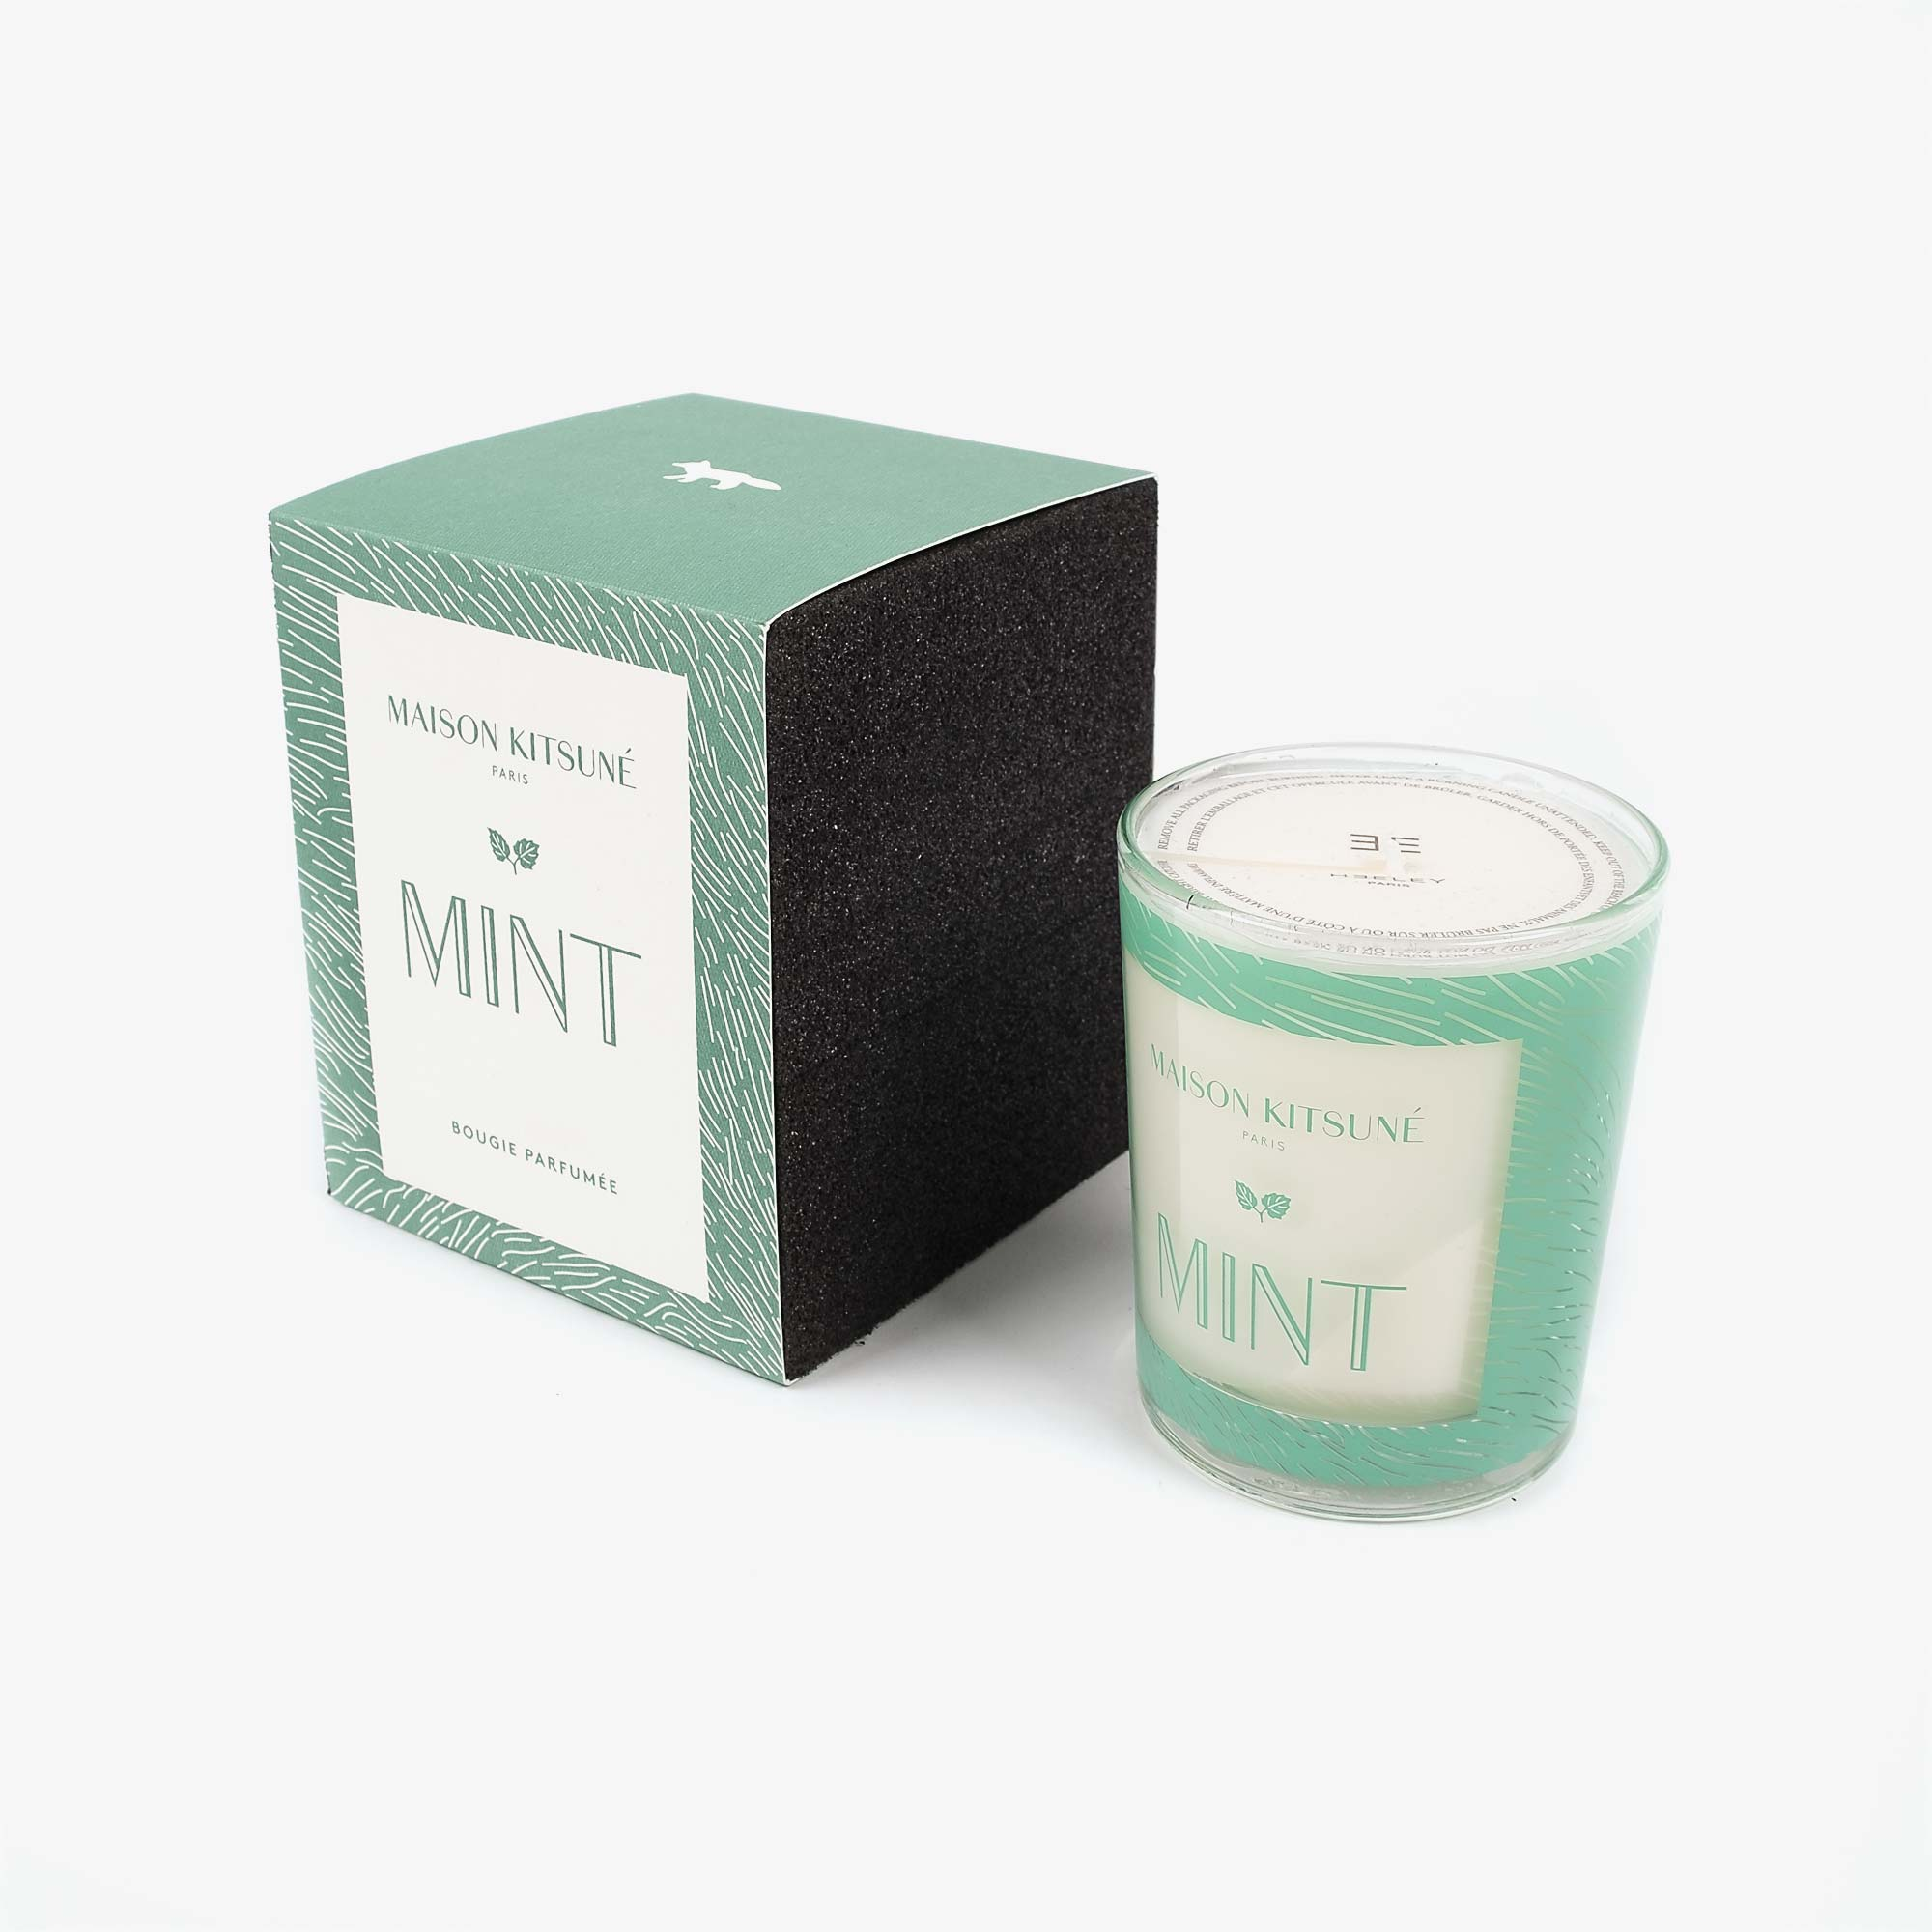 Maison Kitsune Mint Candle - Green 2